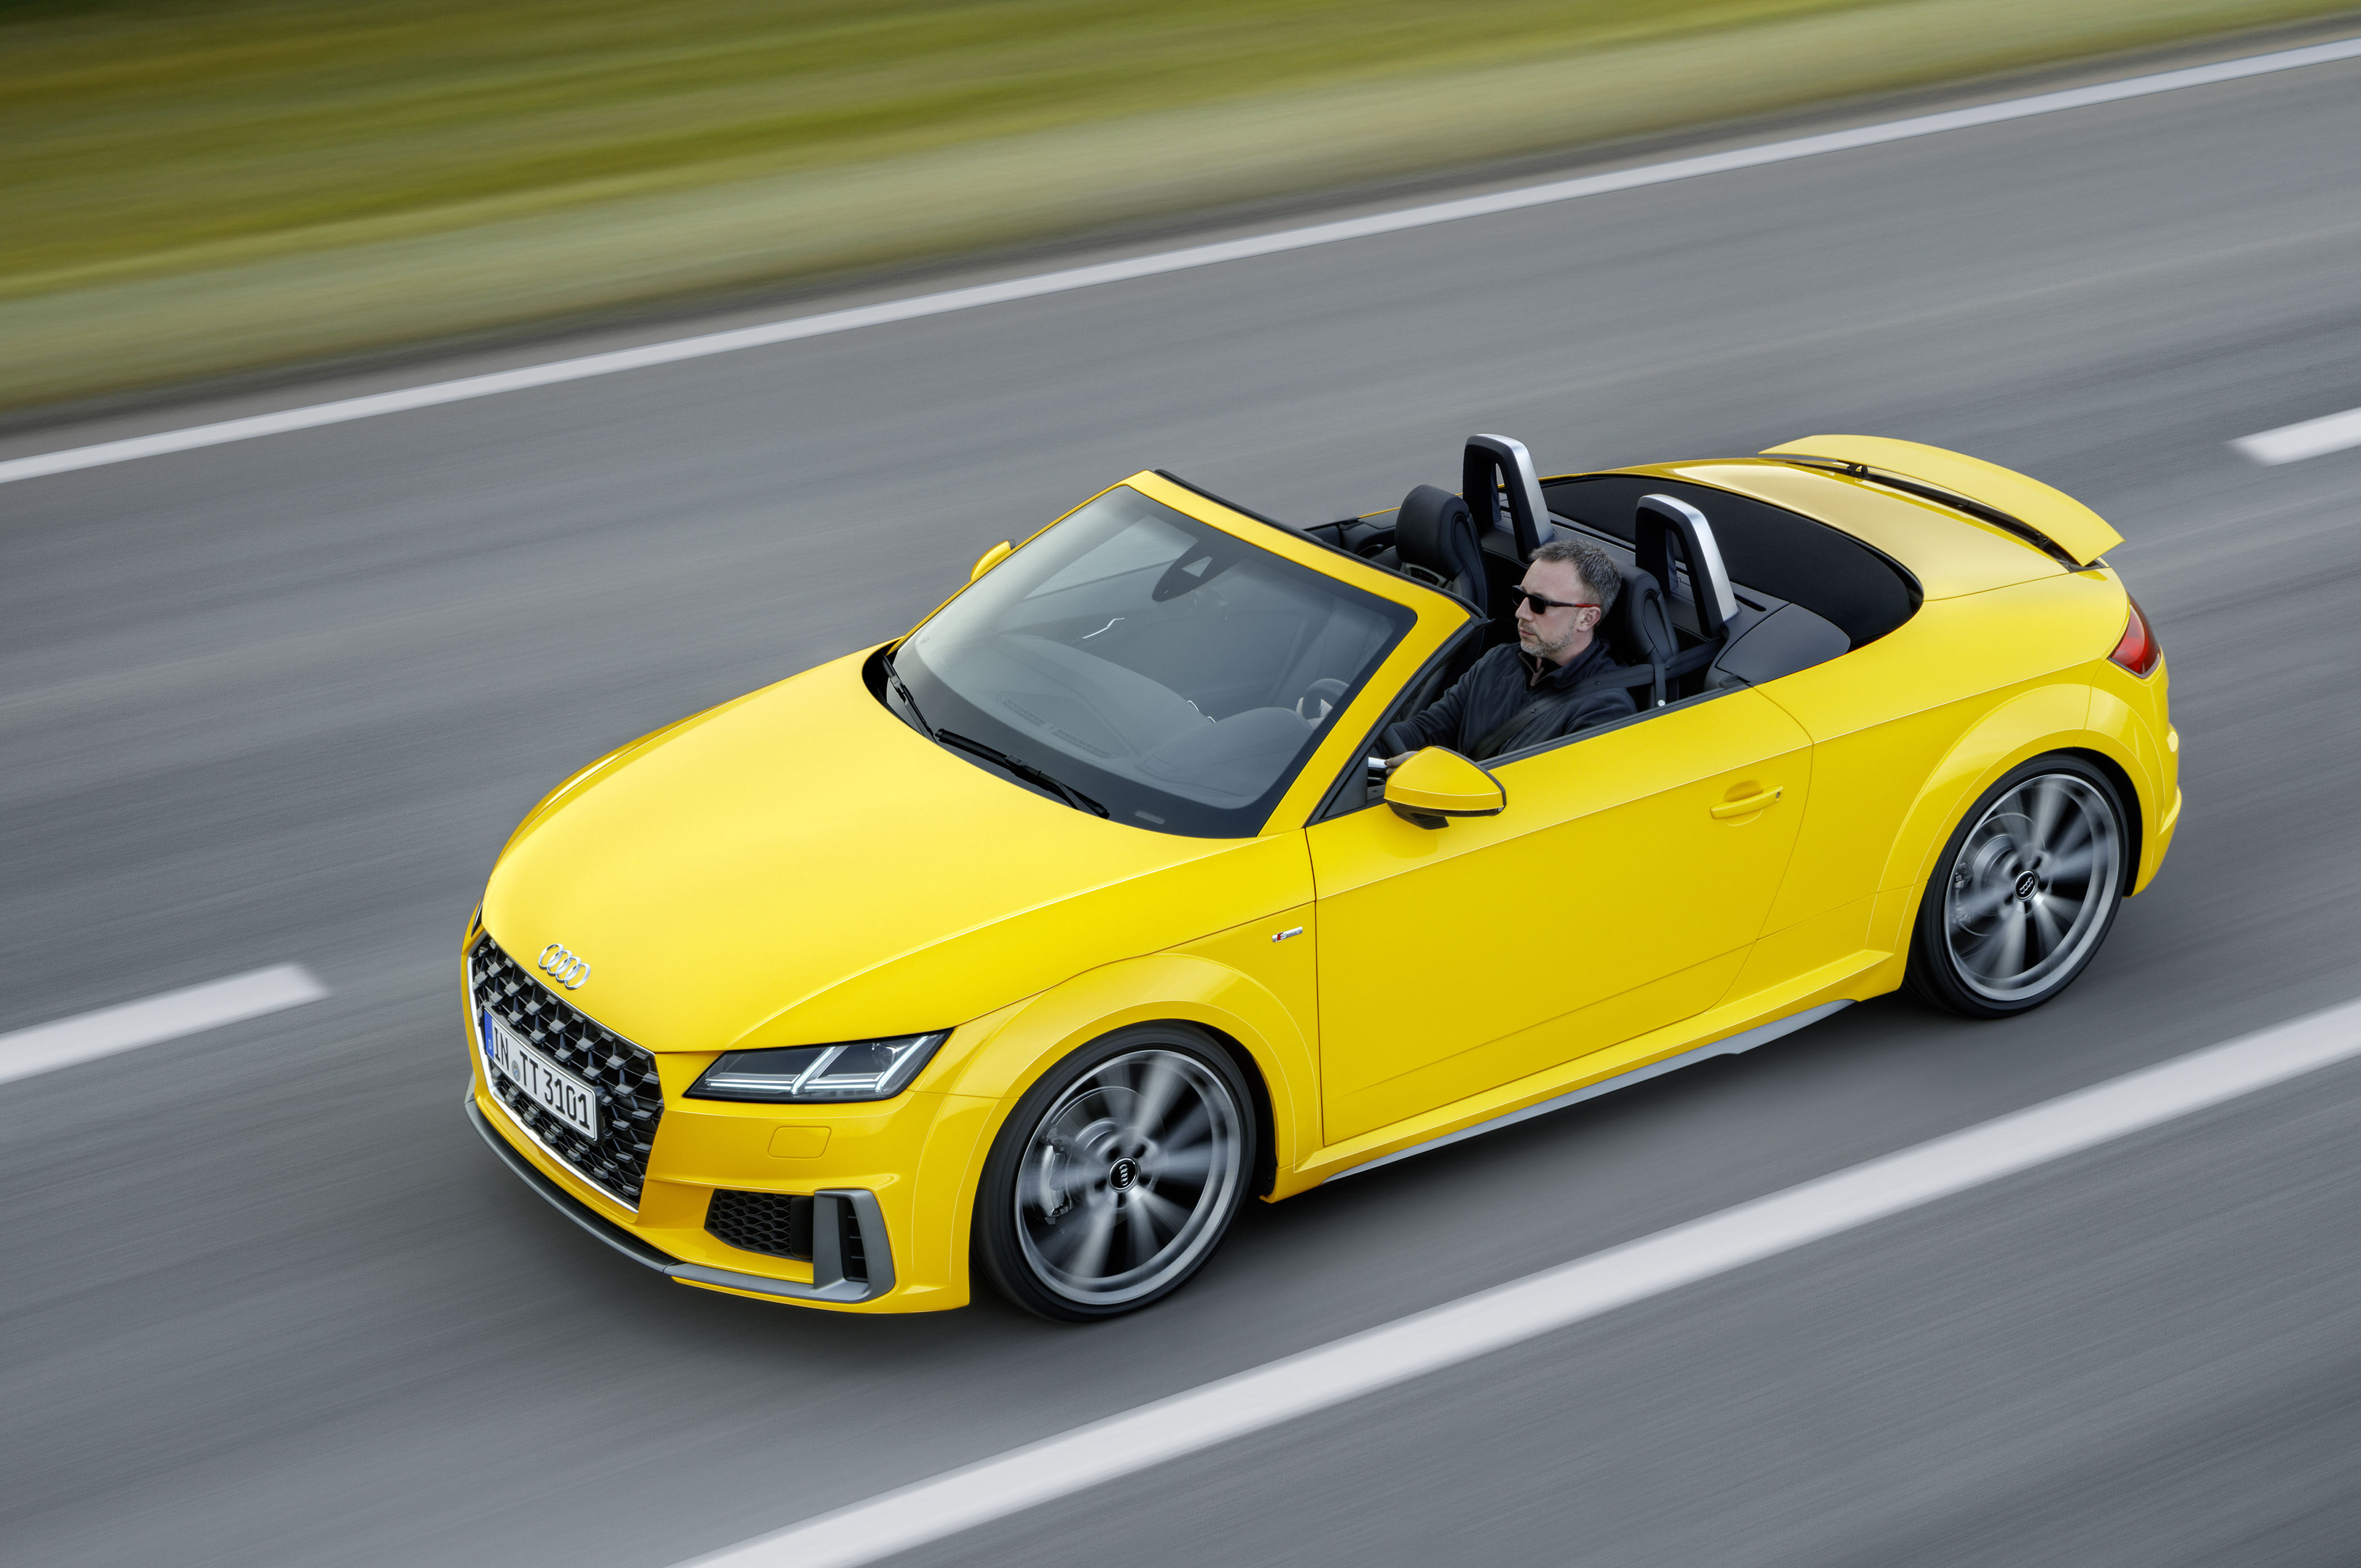 Audi updates TT and TTS, introduces special TT 20 Years edition - Autoblog